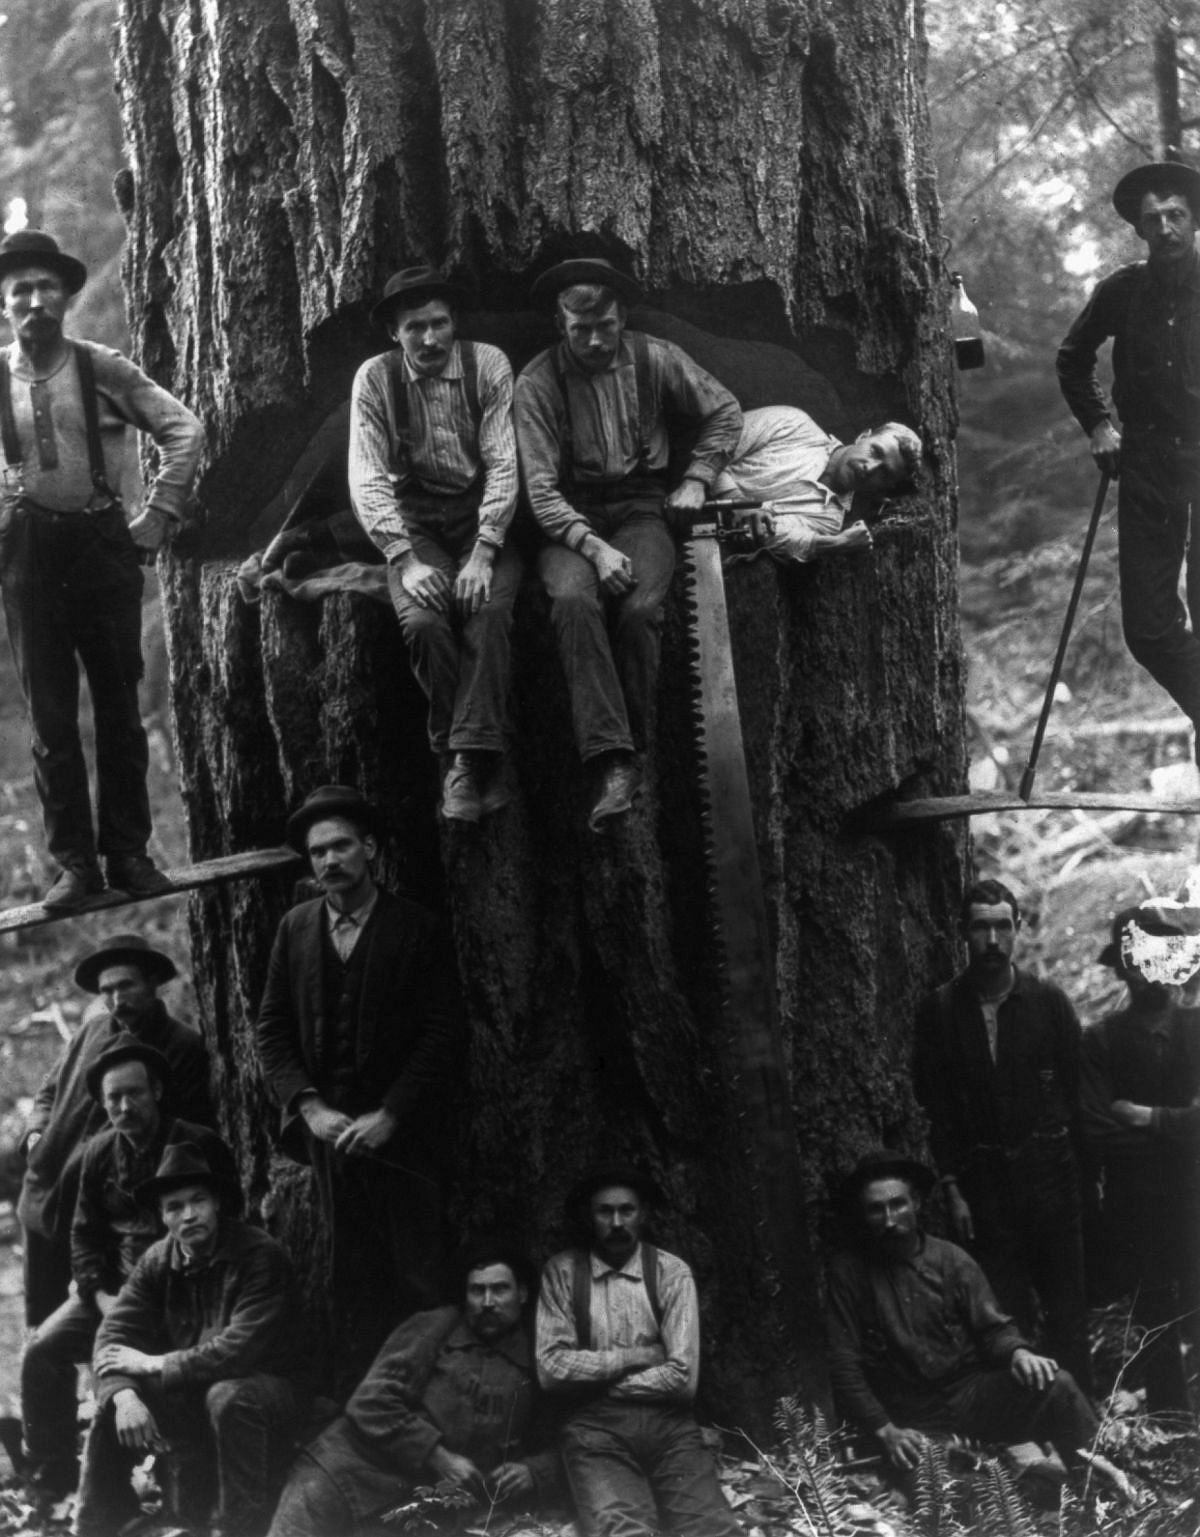 1901  Lumberjacks pose with a 12-foot-wide fir tree.  Image: Library of Congress